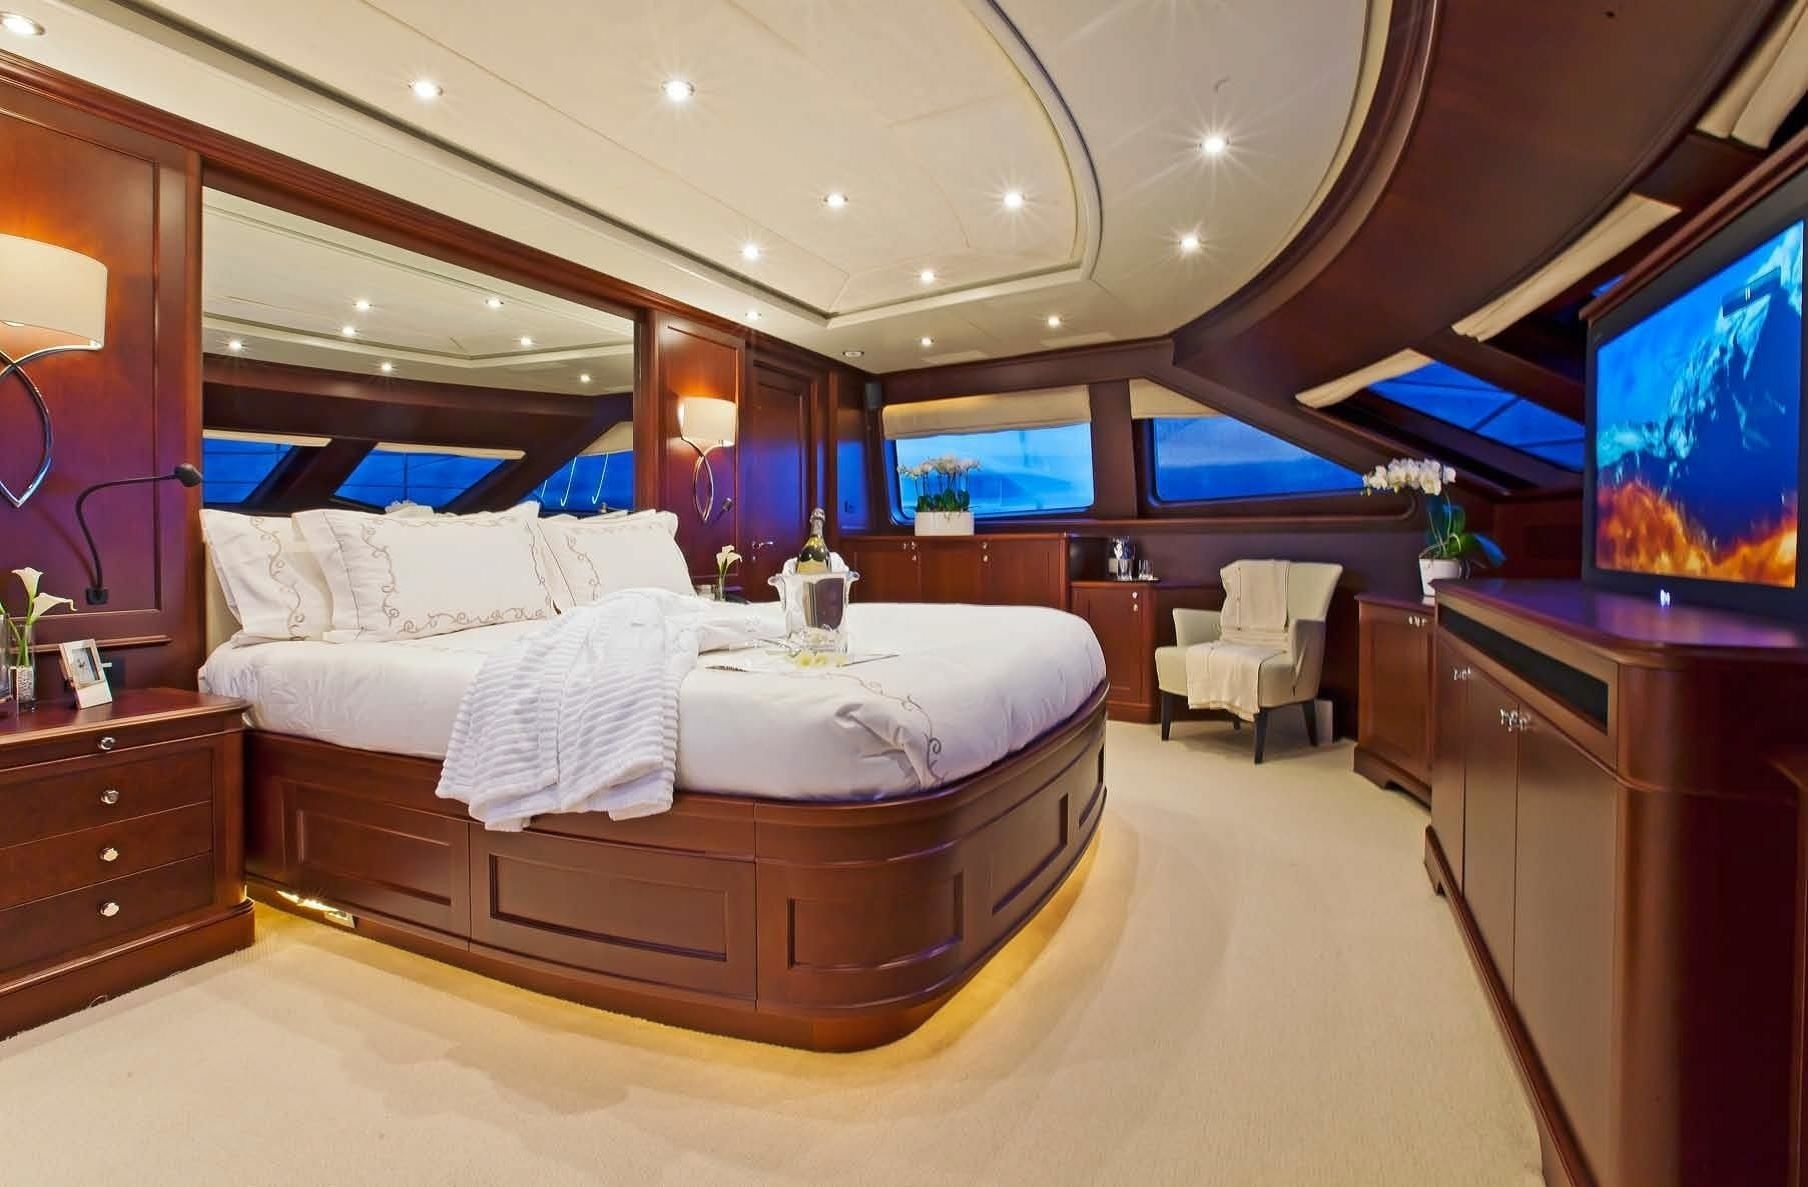 Classically styled, elegant master suite with great views